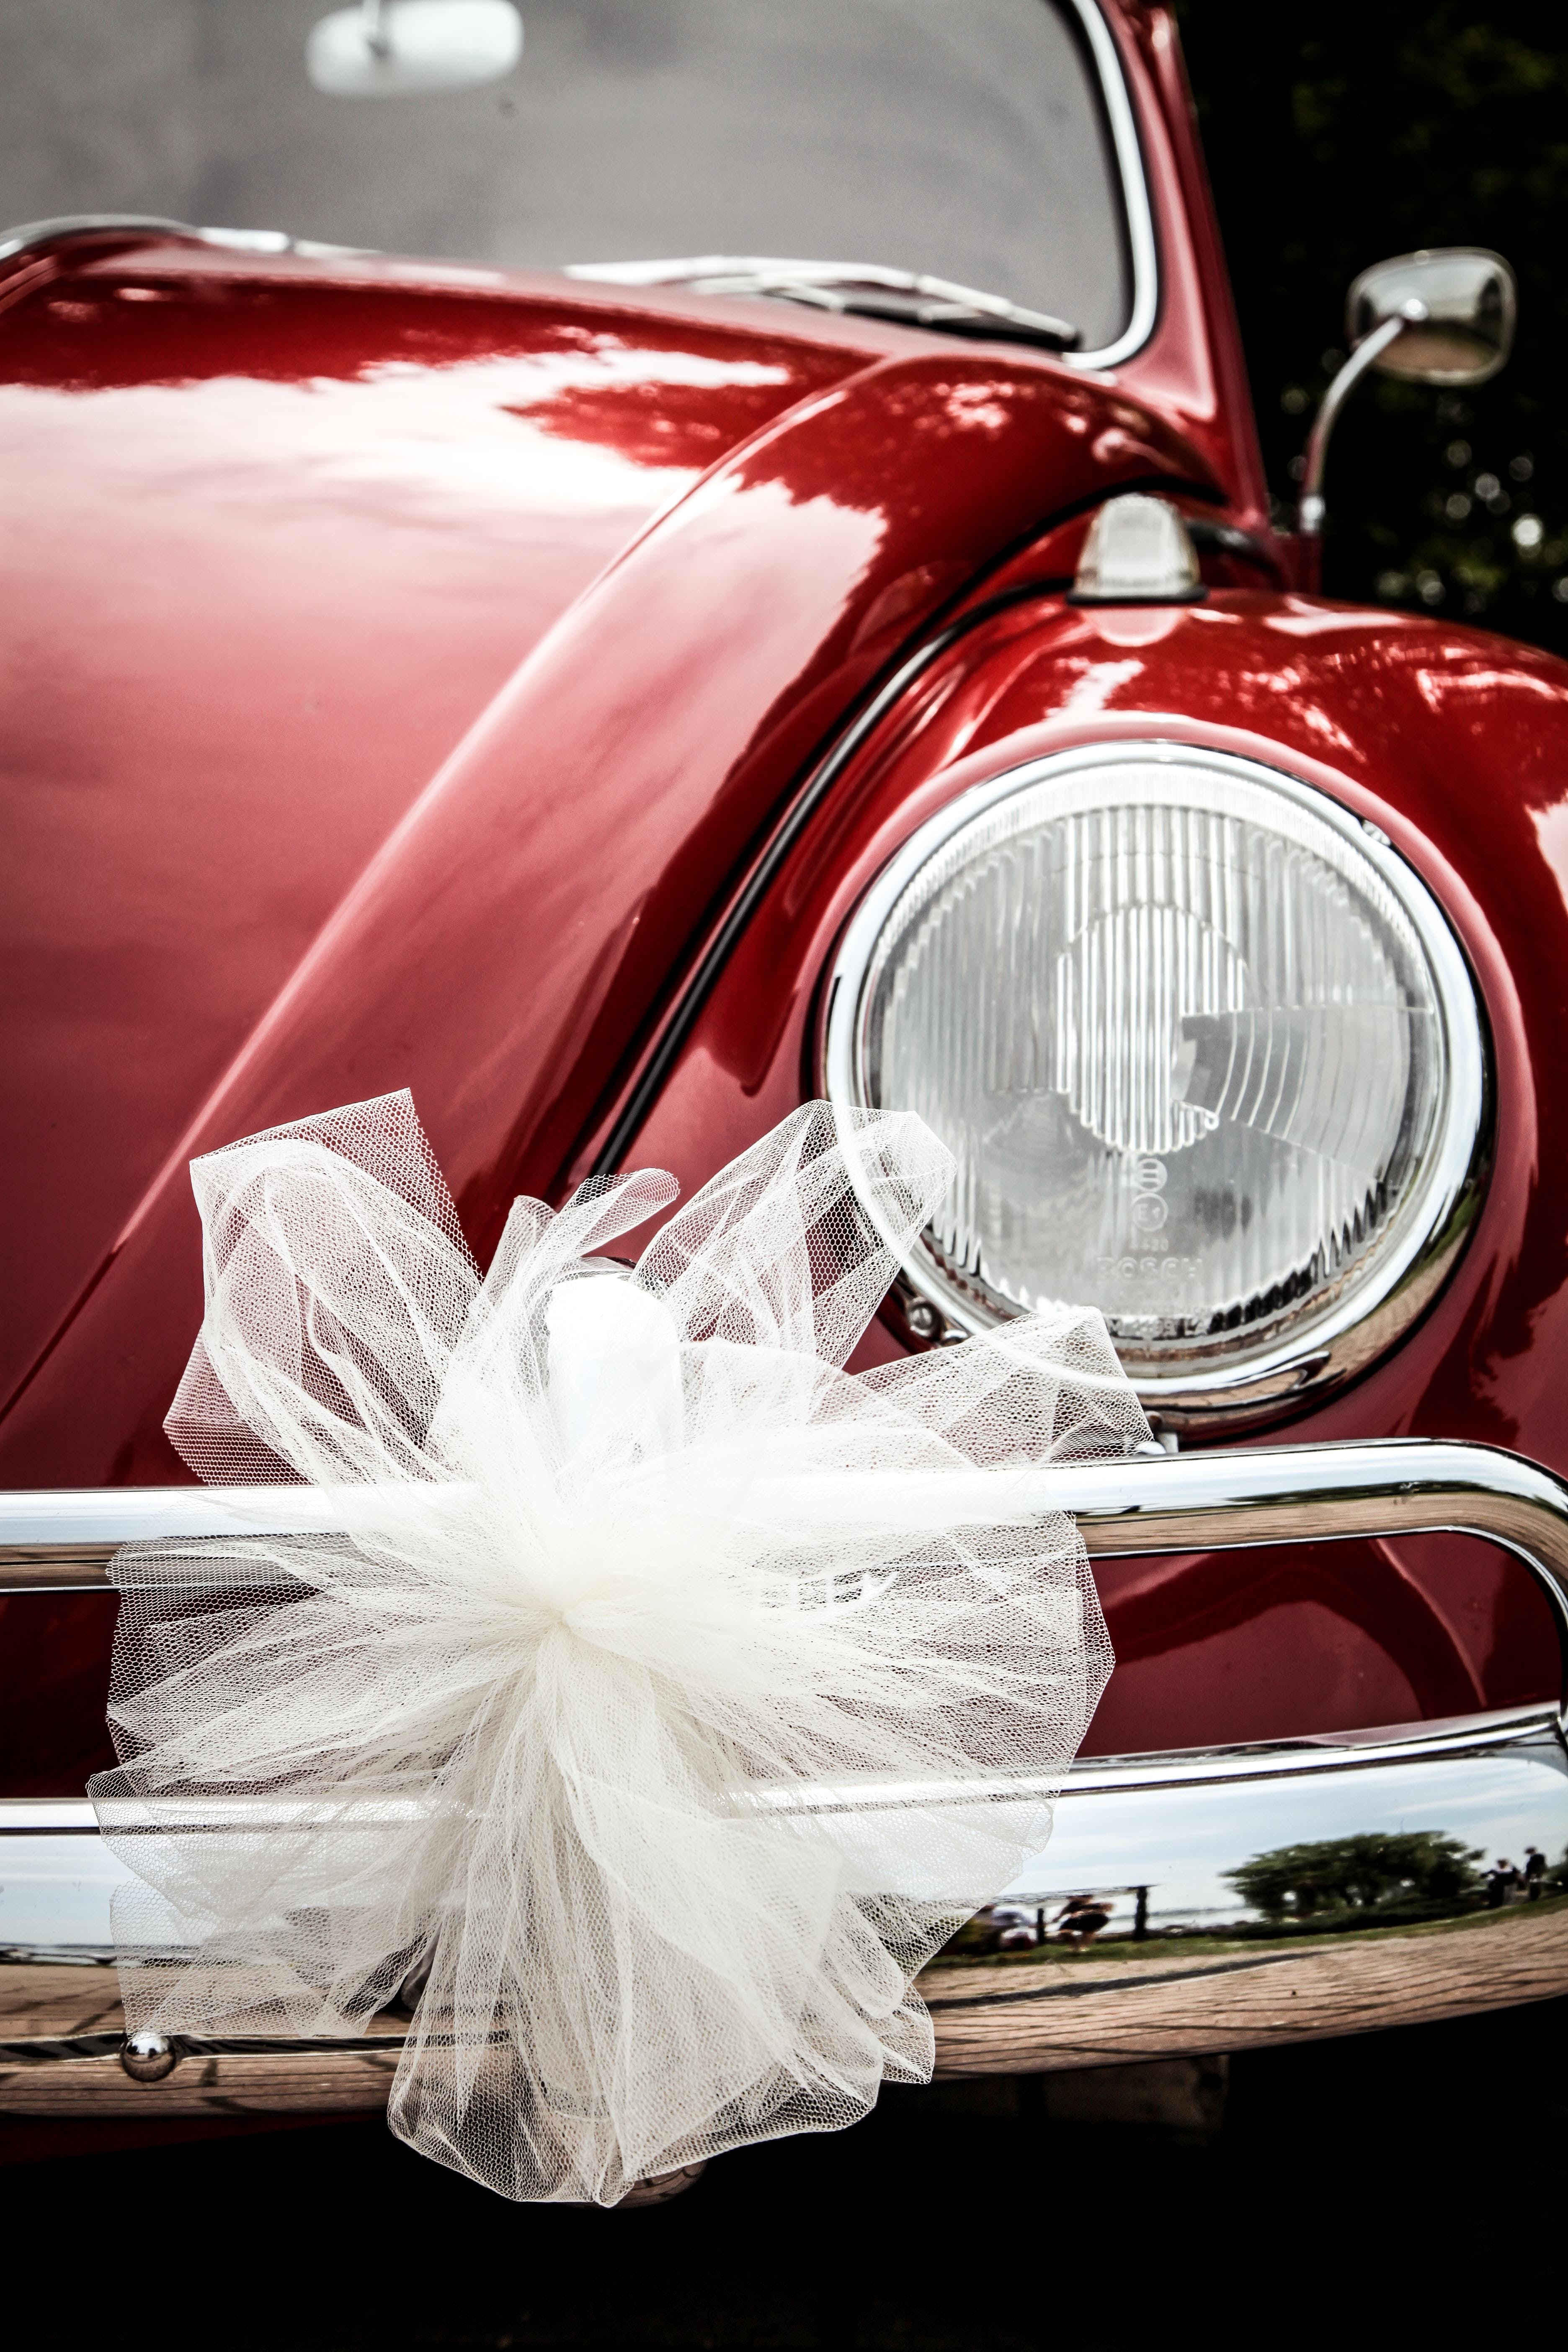 Free stock photo of car, ceremony, classic, lamp